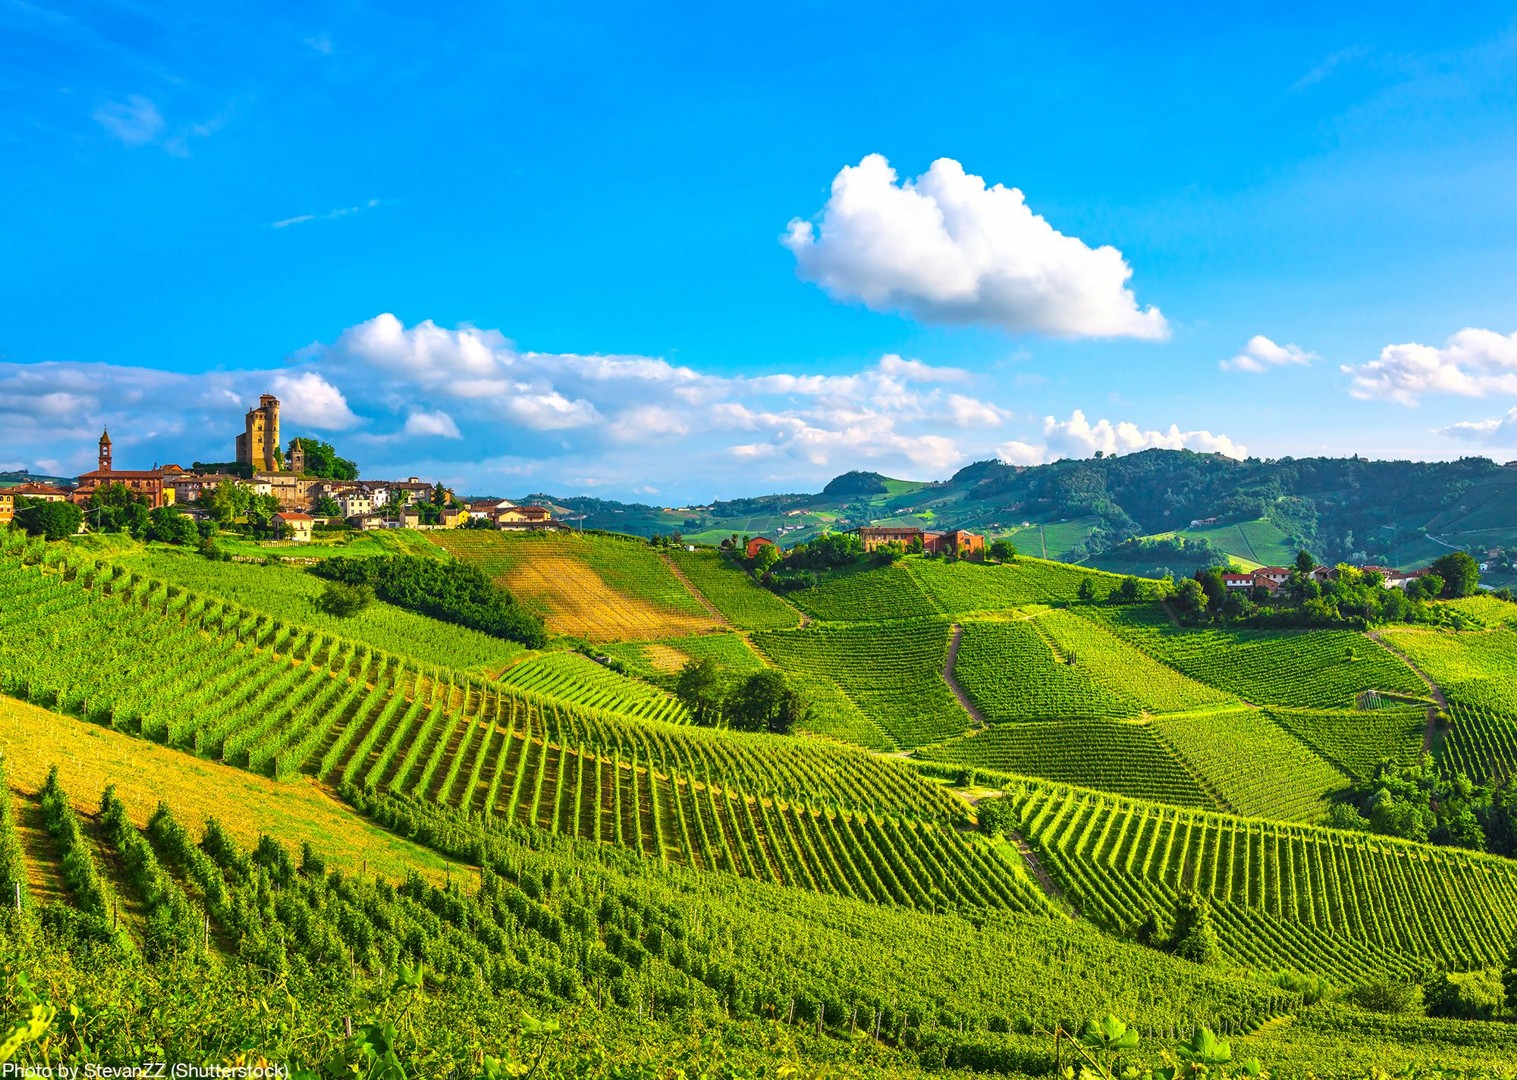 italy-piemonte-cycling-tour-self-guided-vineyards-langhe-roero.jpg - Italy - Piemonte - Vineyards and Views - Self-Guided Leisure Cycling Holiday - Italia Leisure and Family Cycling